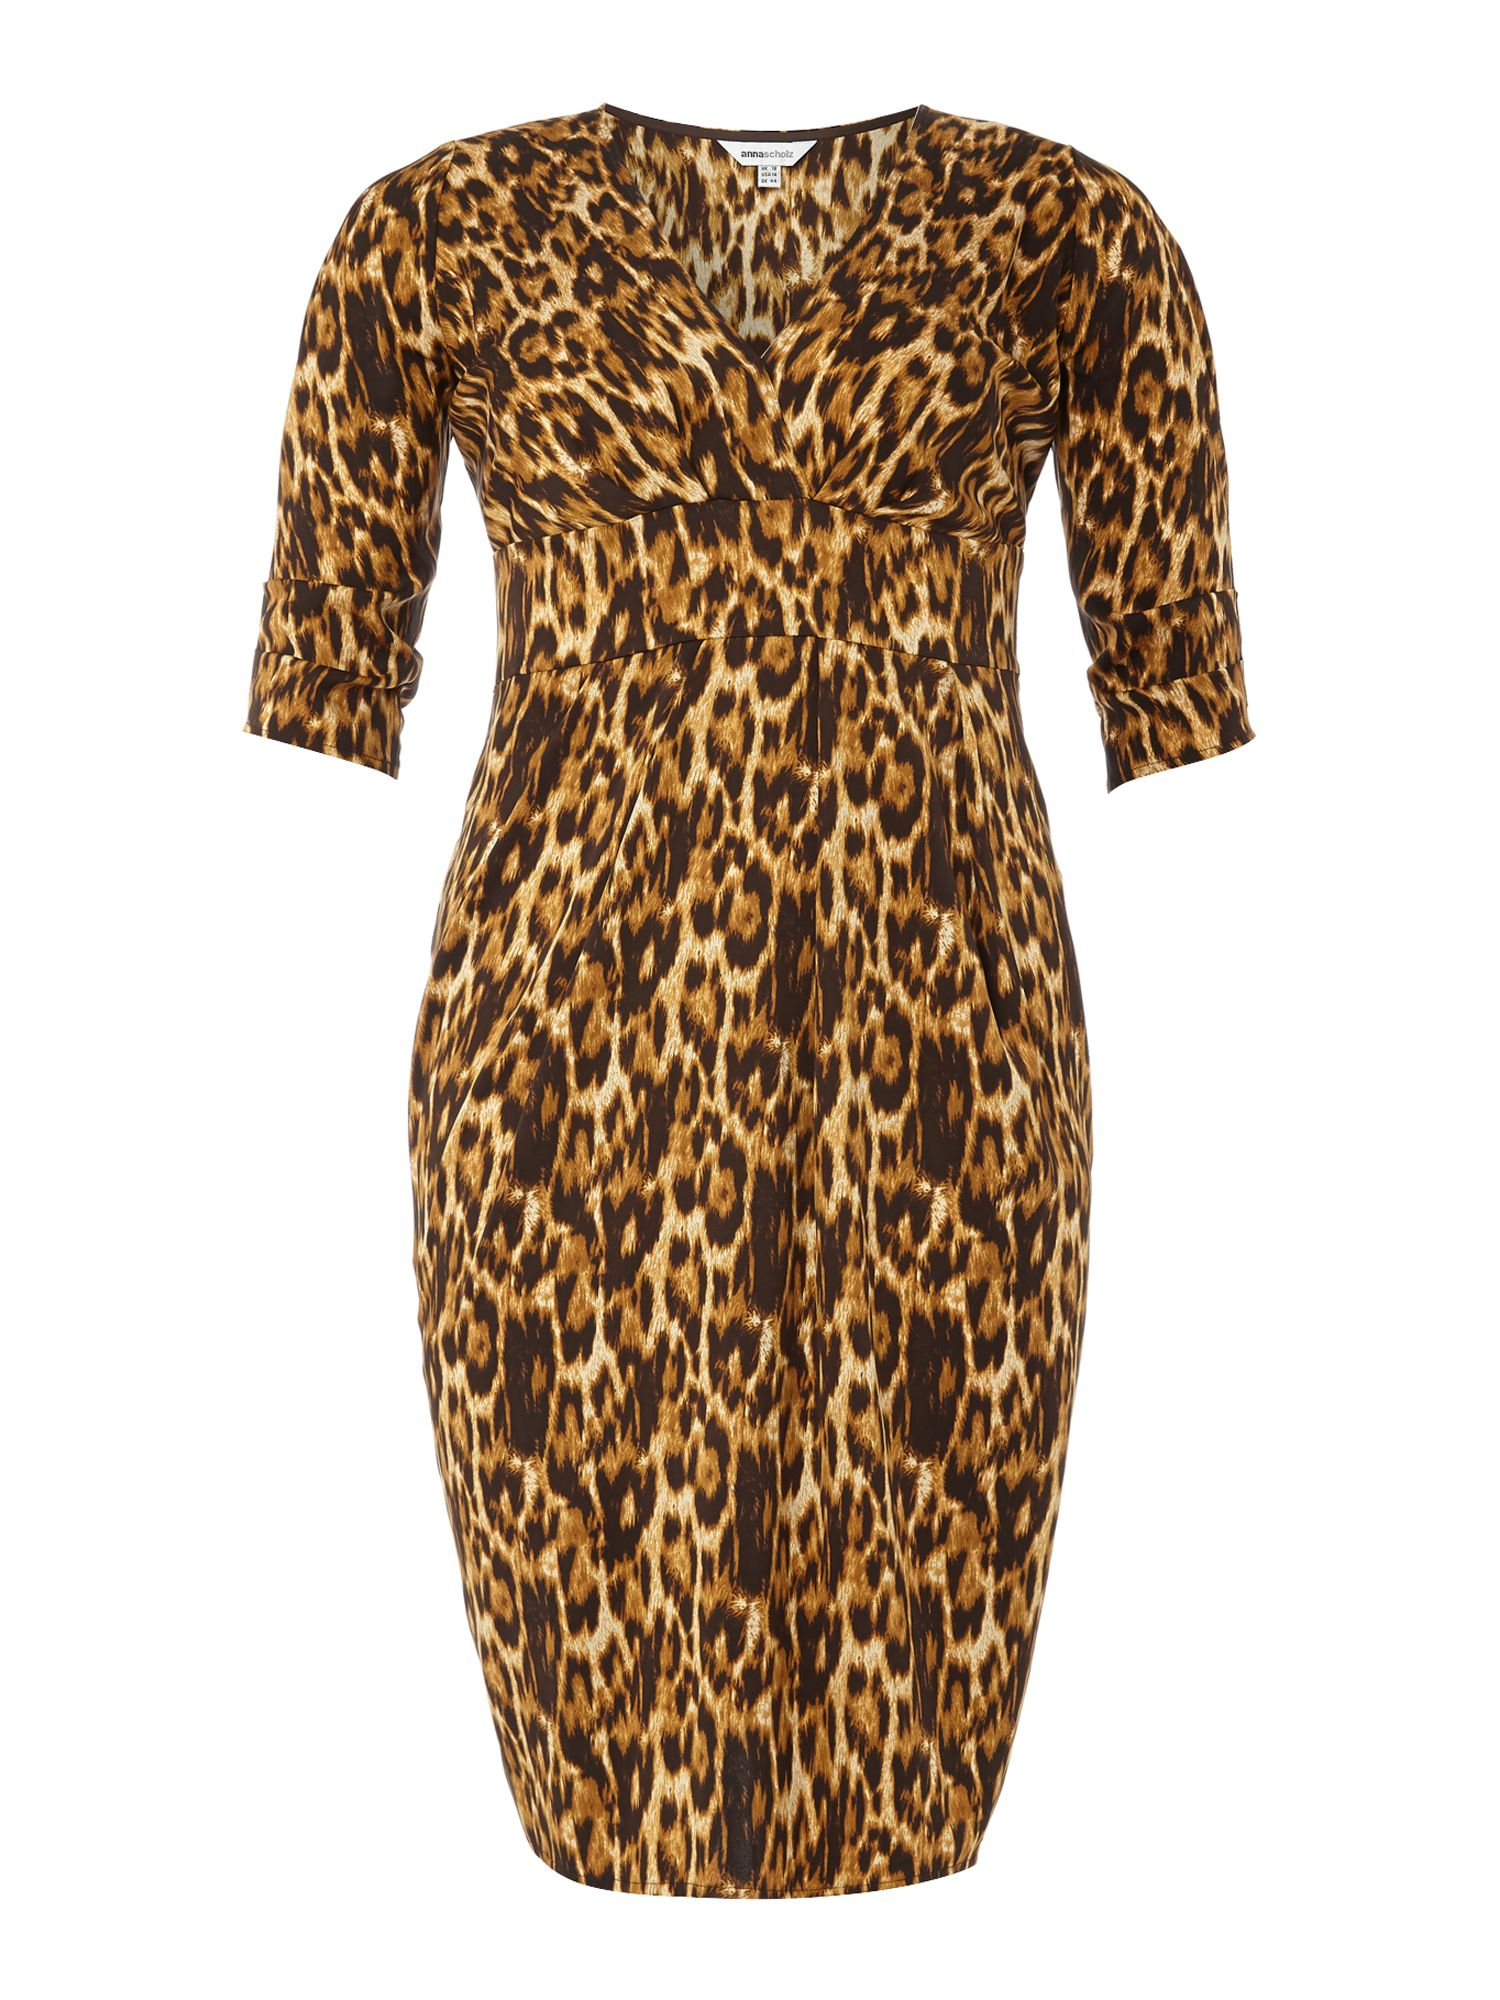 3/4 sleeve leopard print dress